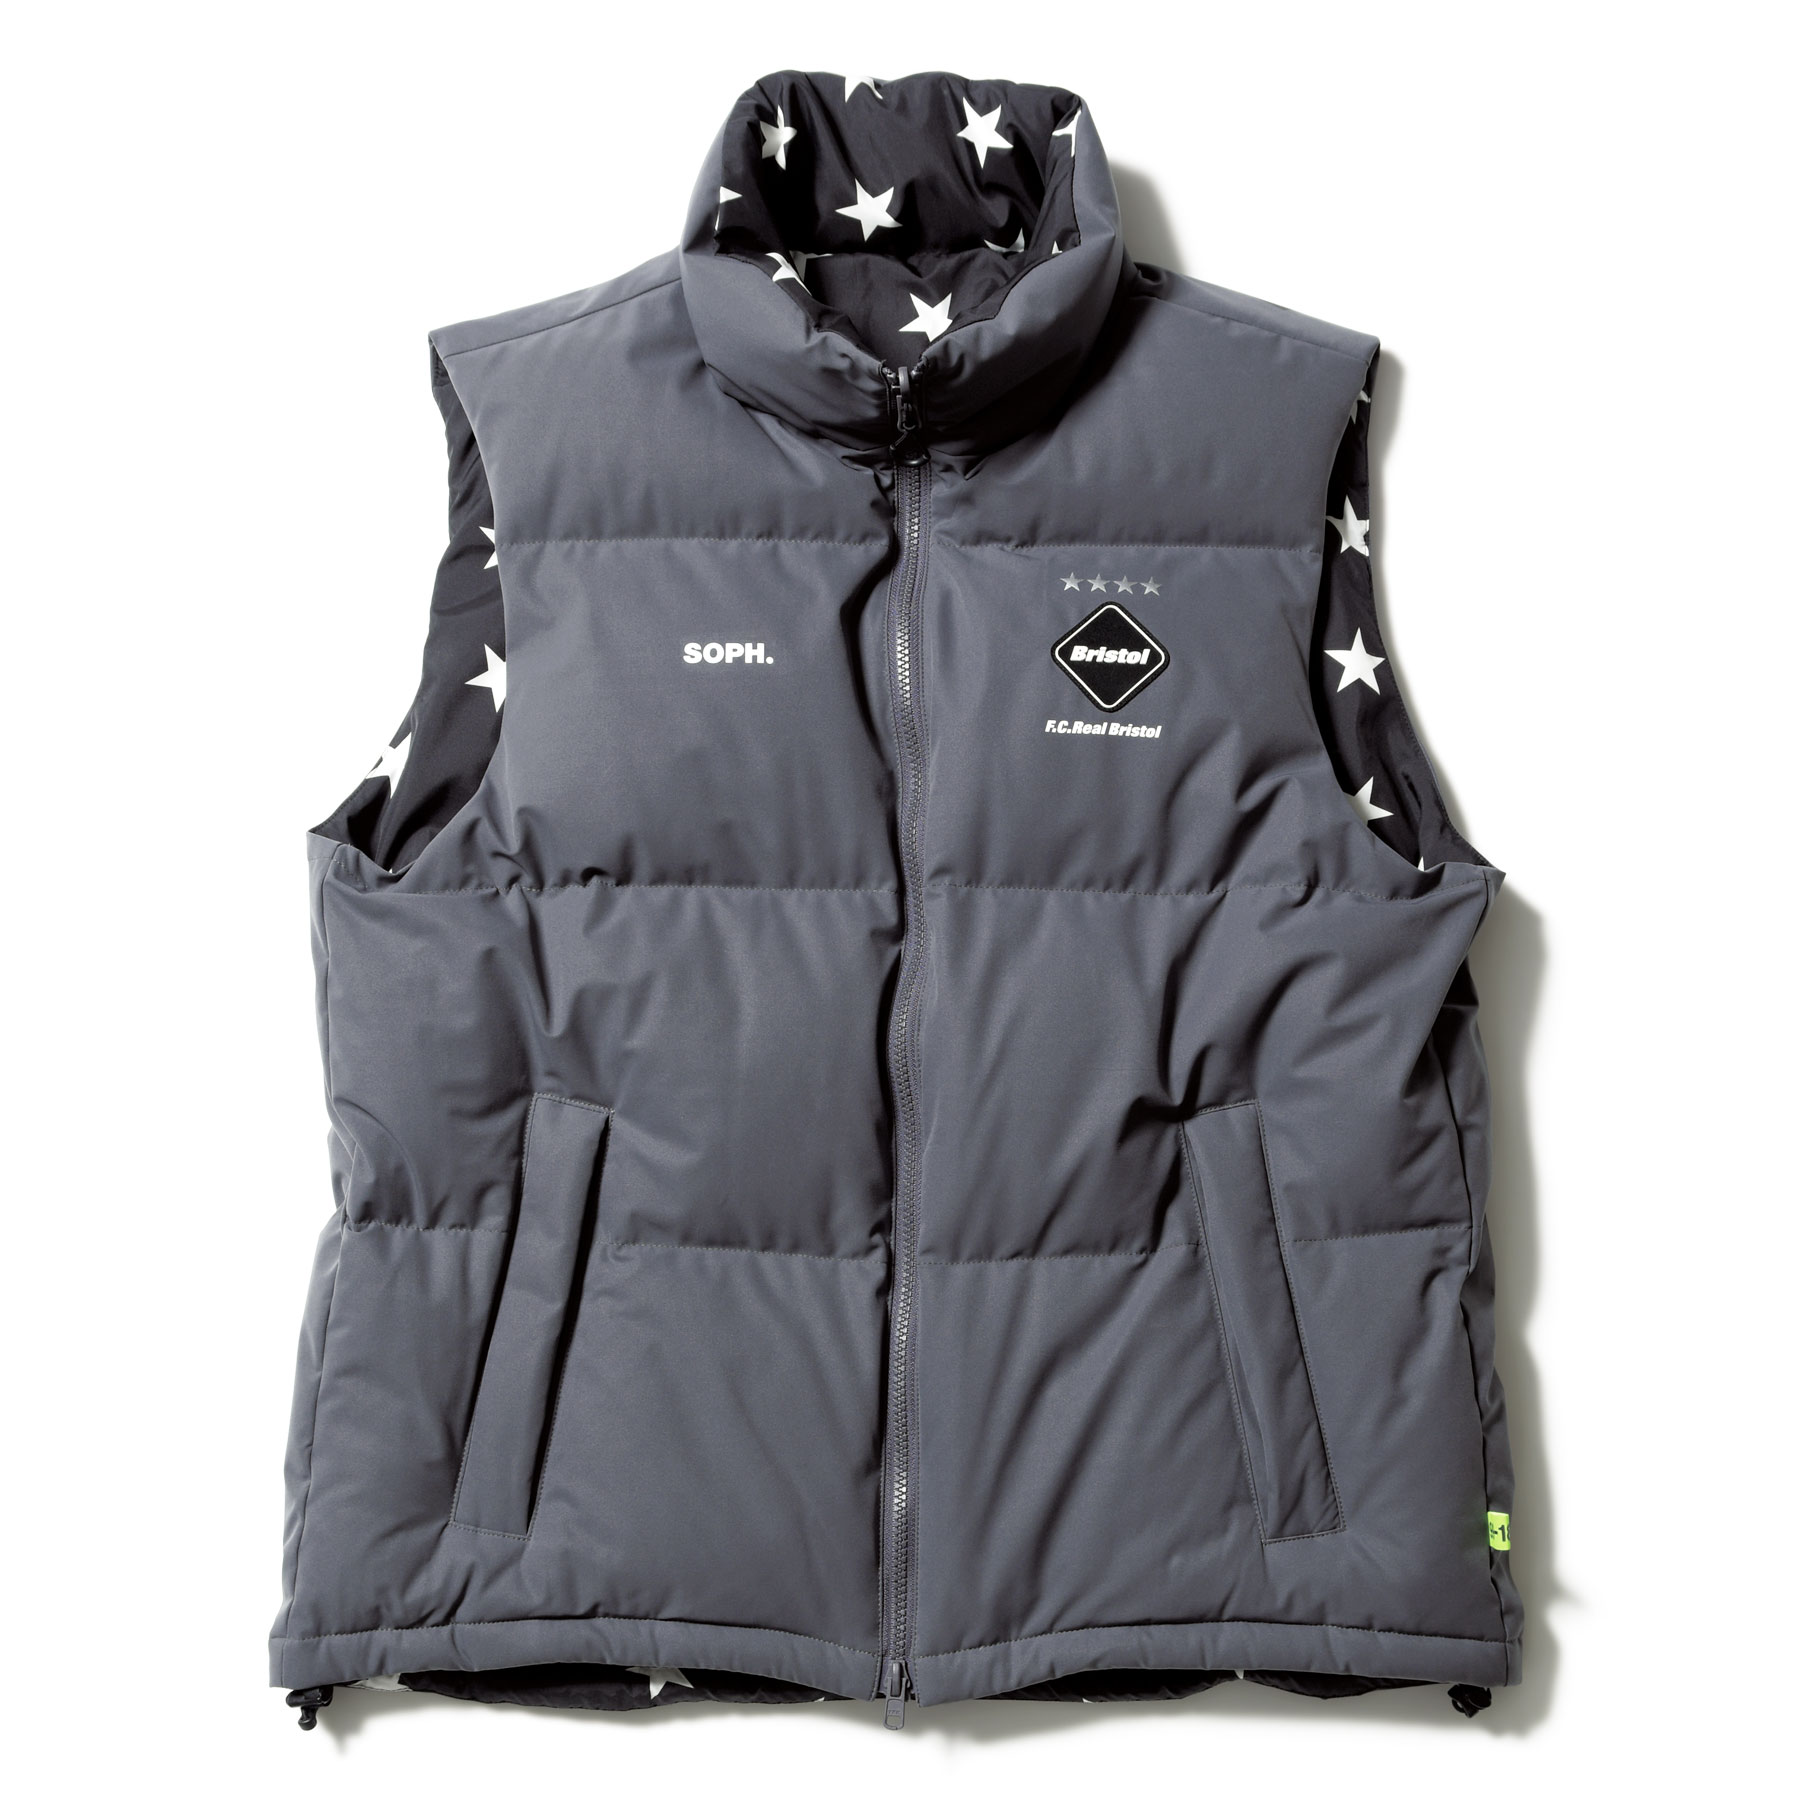 F.C.Real Bristol / REVERSIBLE DOWN VEST -GRAY